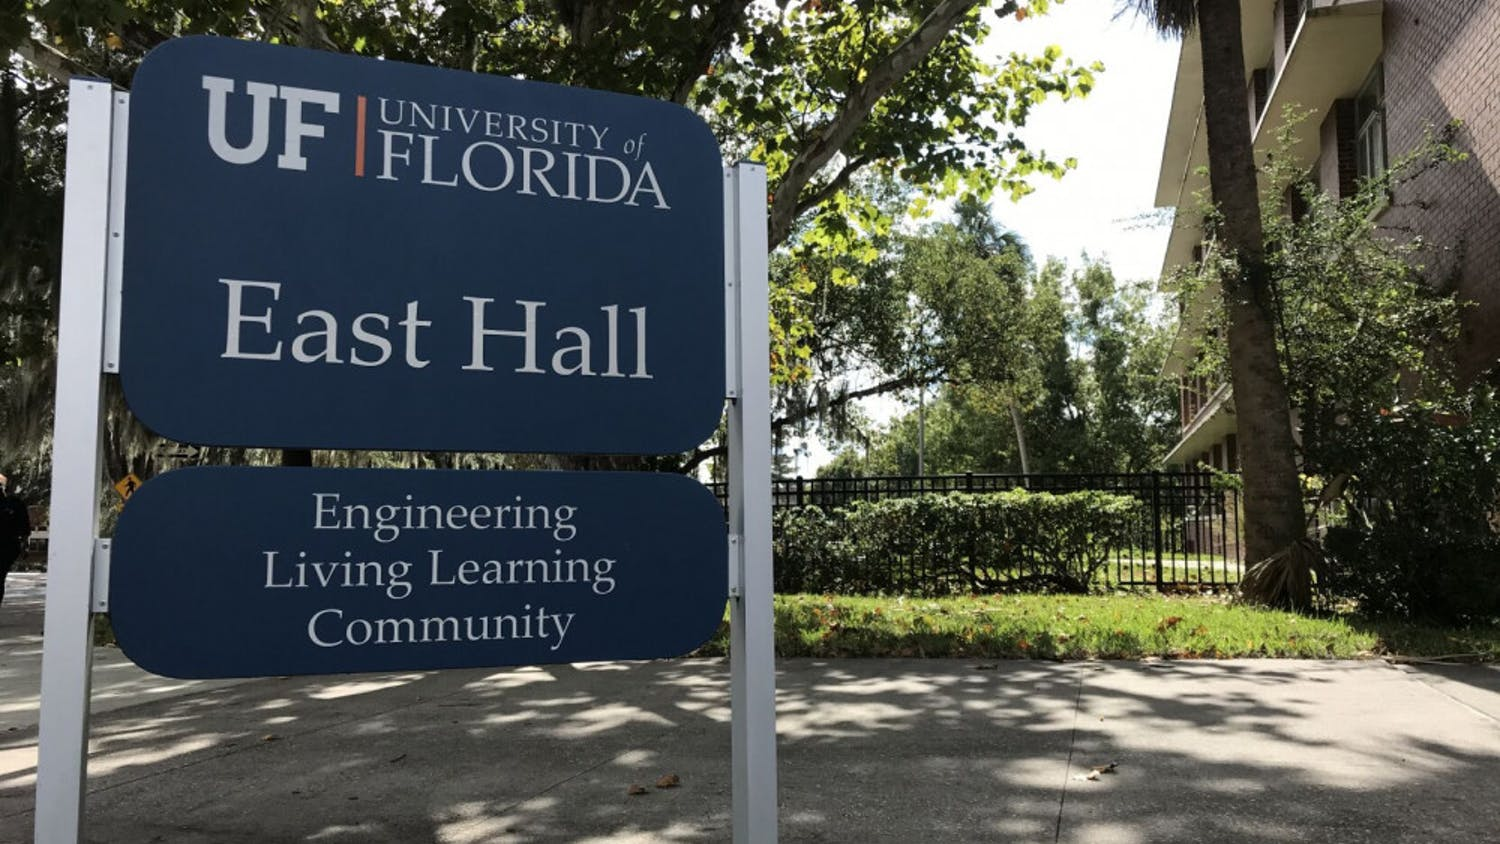 Starting next month, East Hall residents will be relocated to free up more quarantine space for the Spring semester.